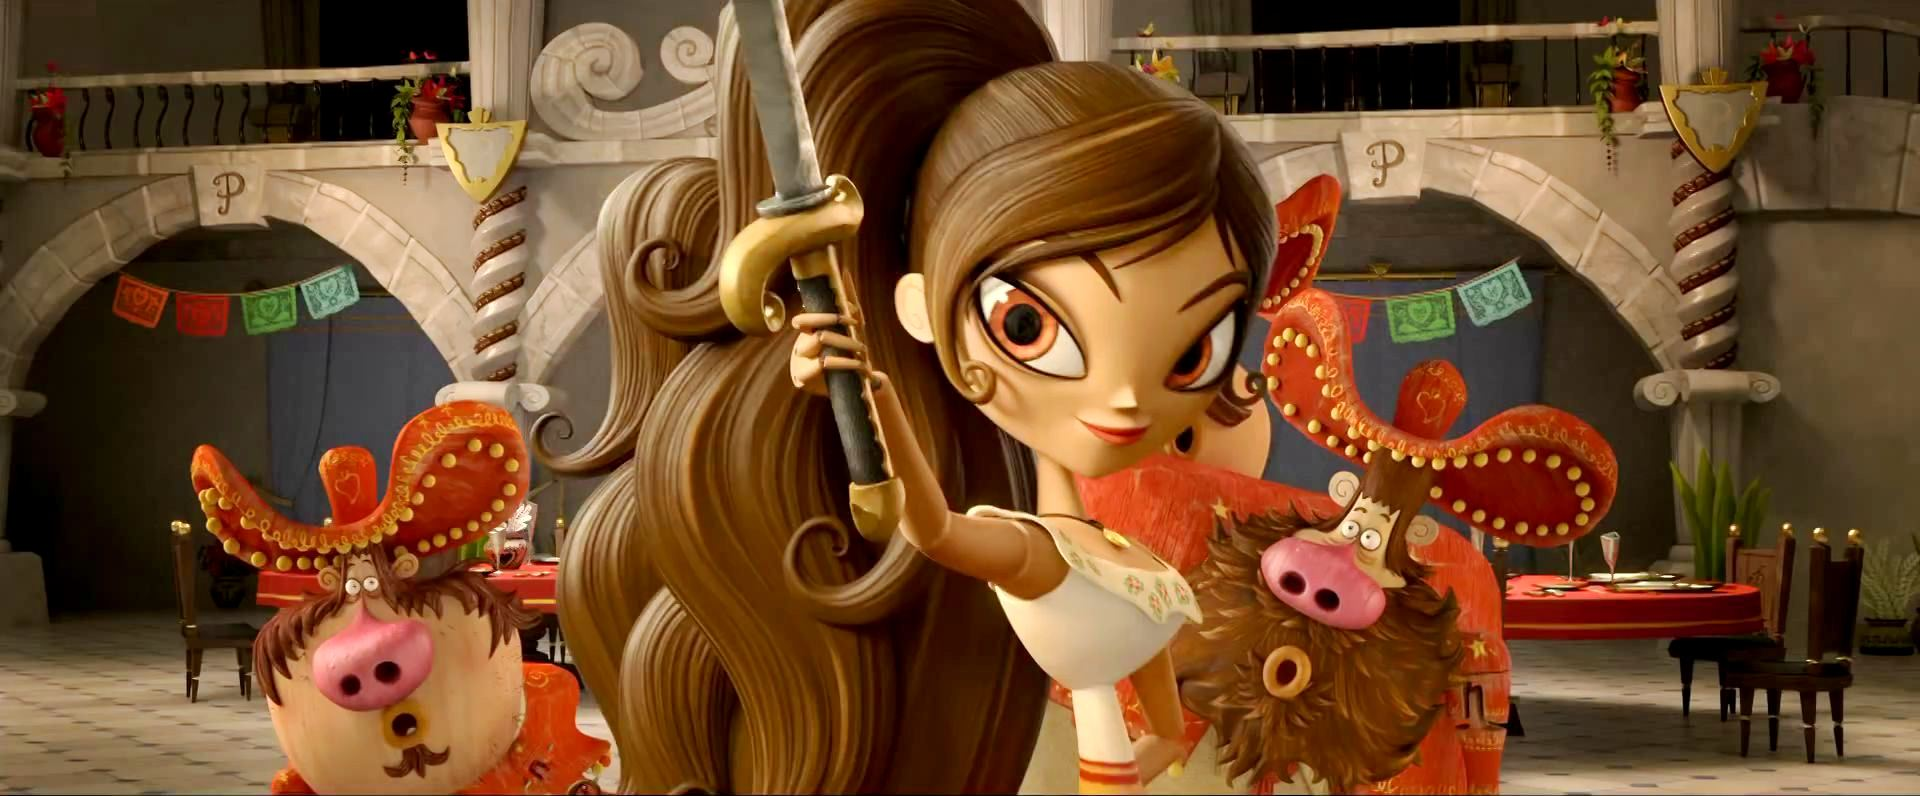 The Book Of Life Stills Wallpapers Zoom Wallpapers